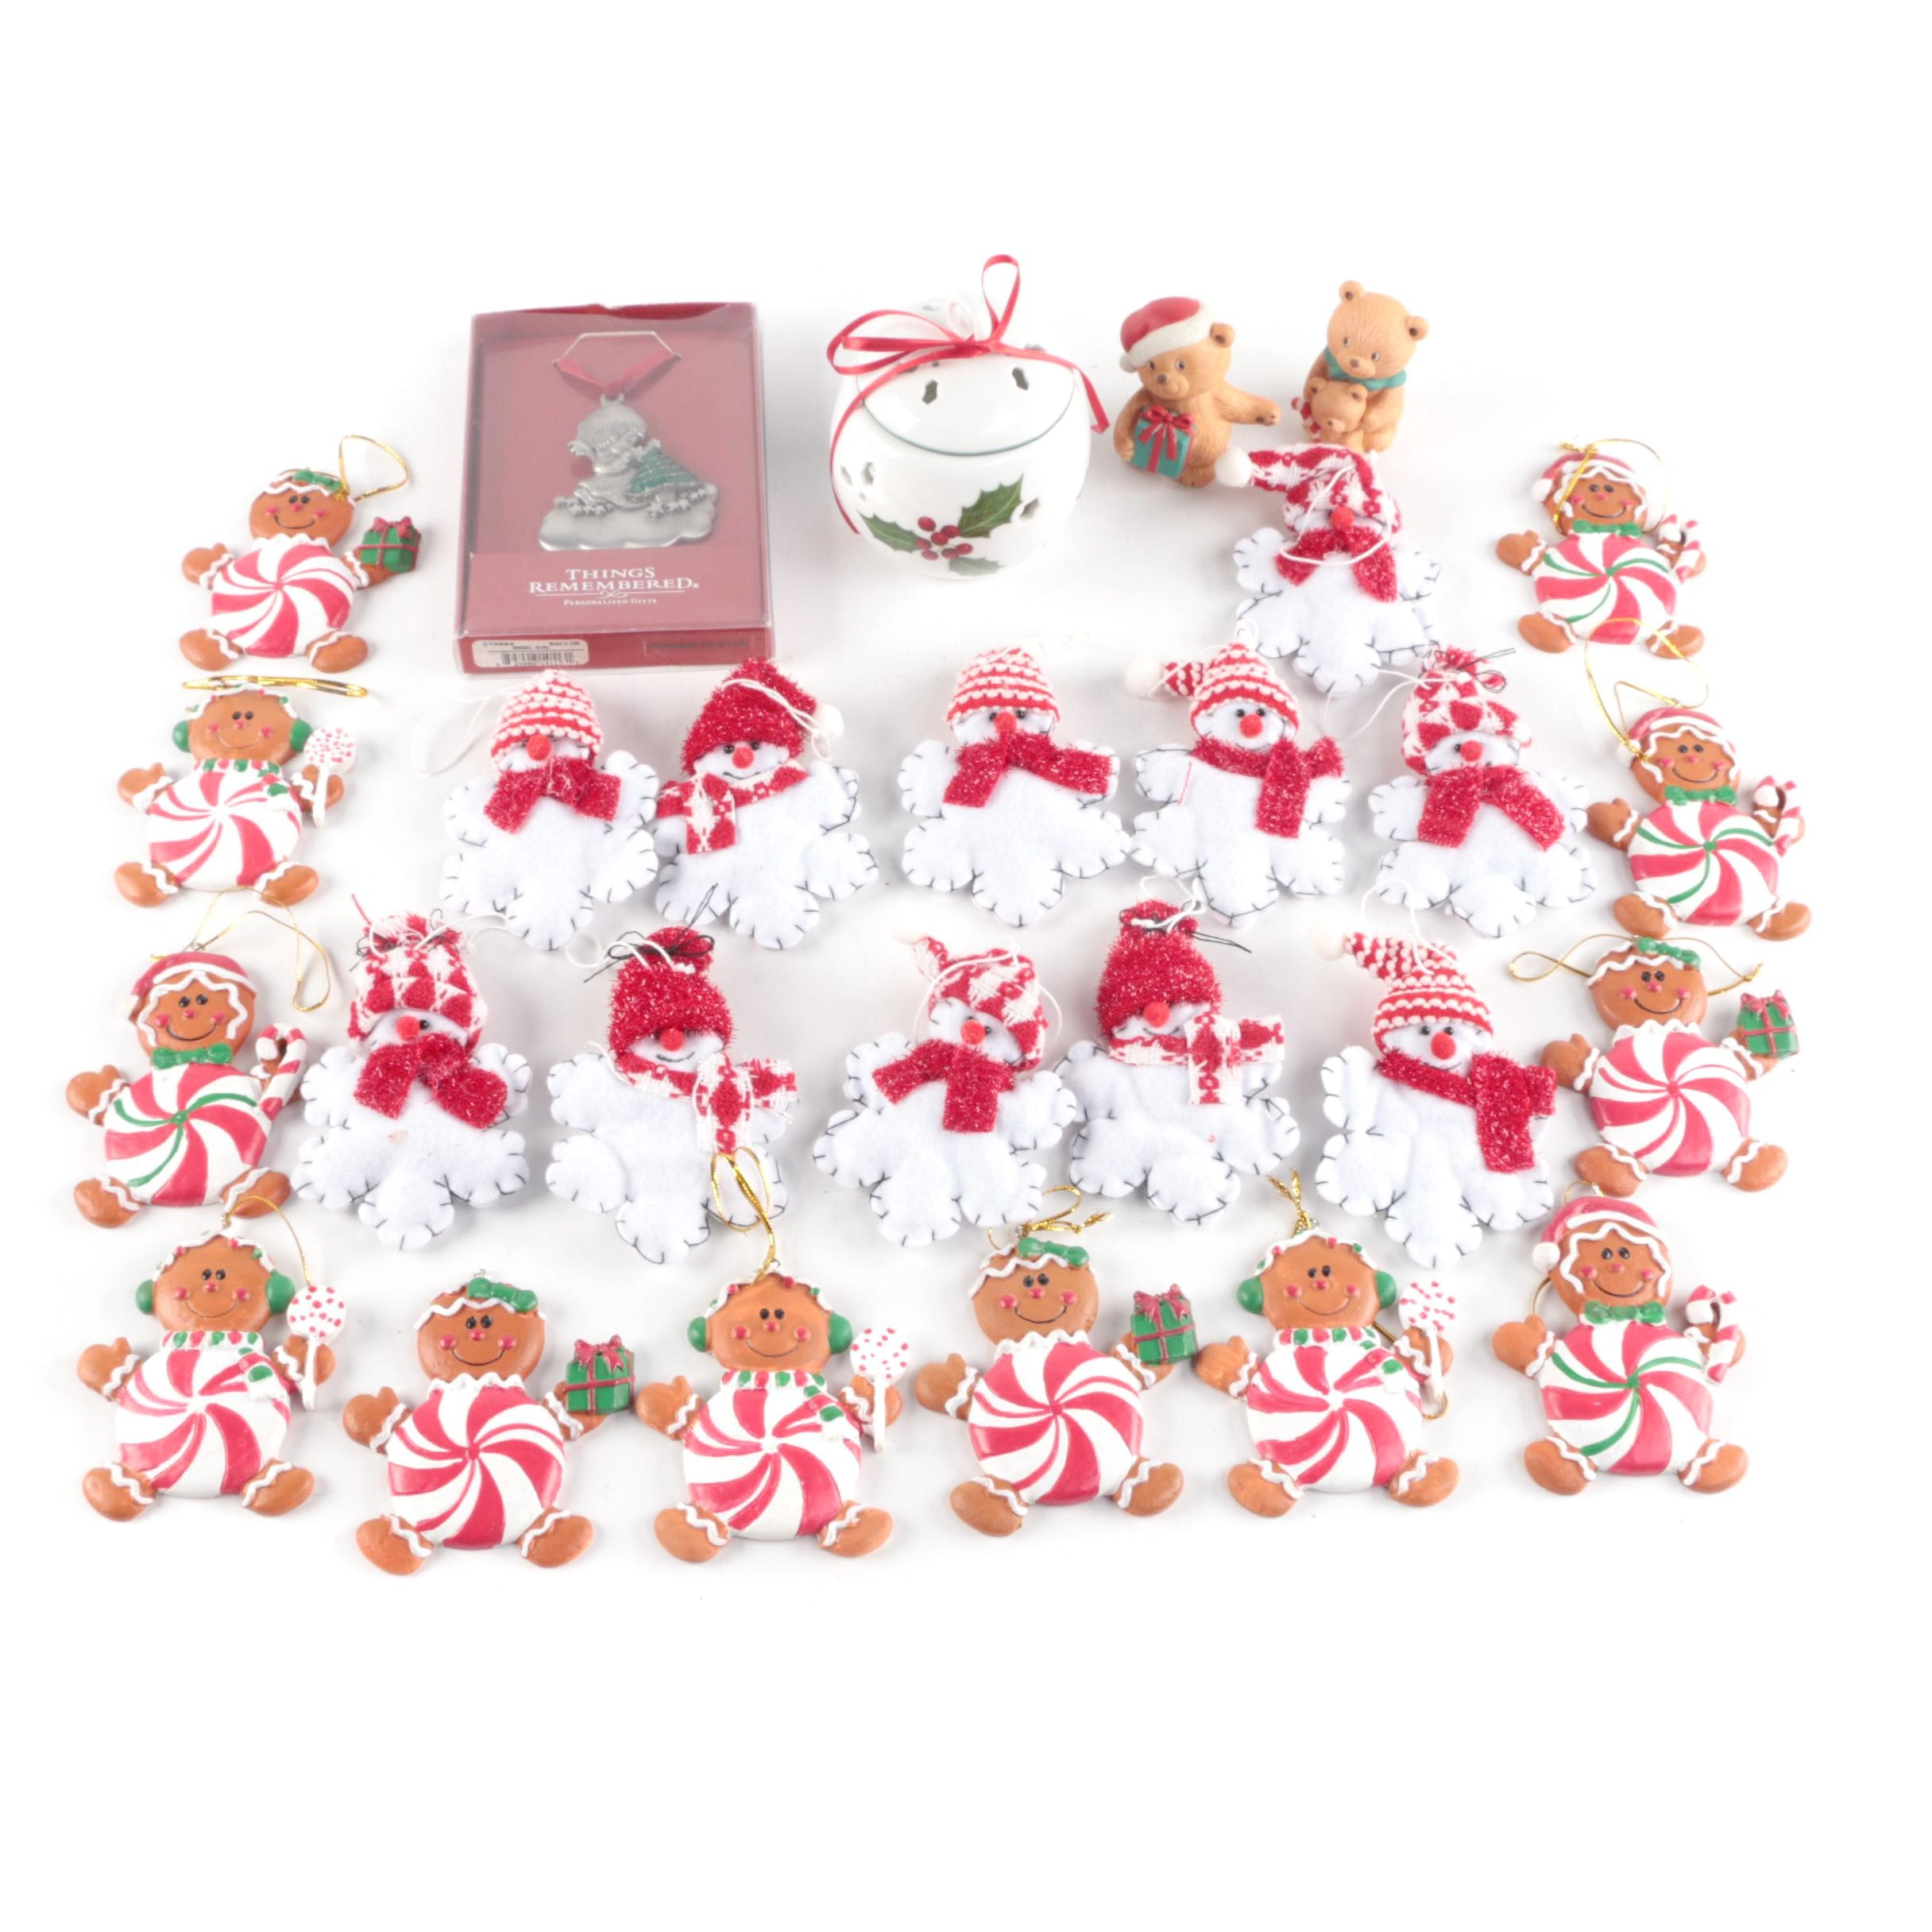 Set of Christmas Ornaments and Decor